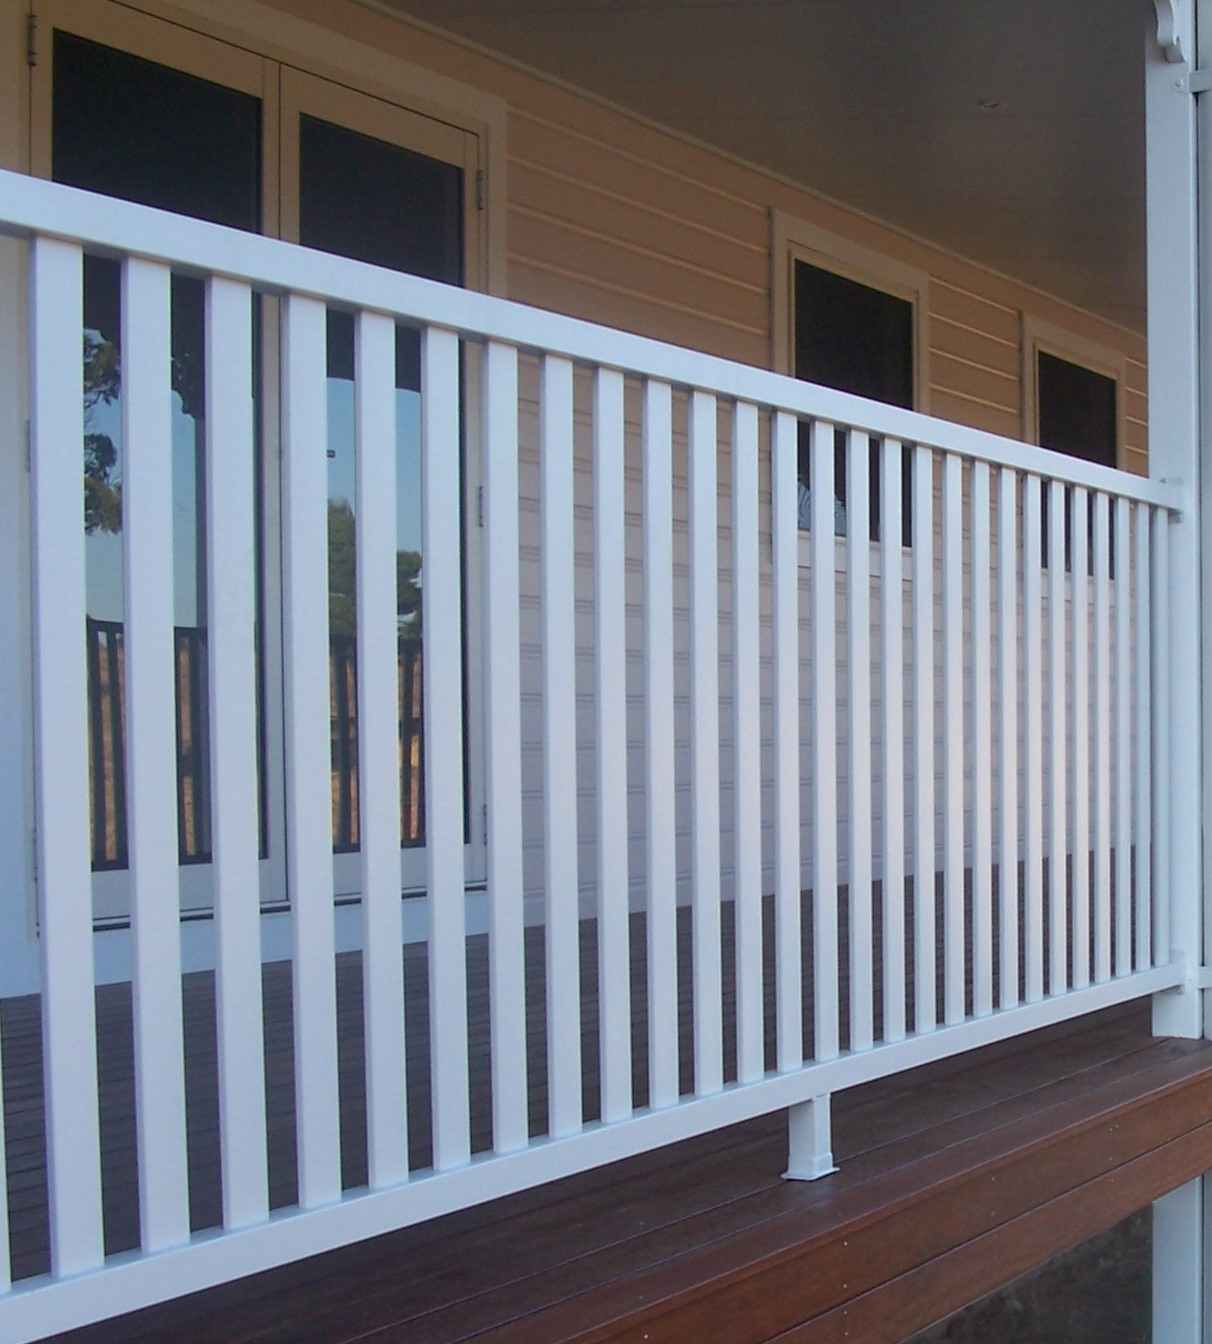 The powder coated galvanised steel gives a strong and durable fence that will look great for years to come.